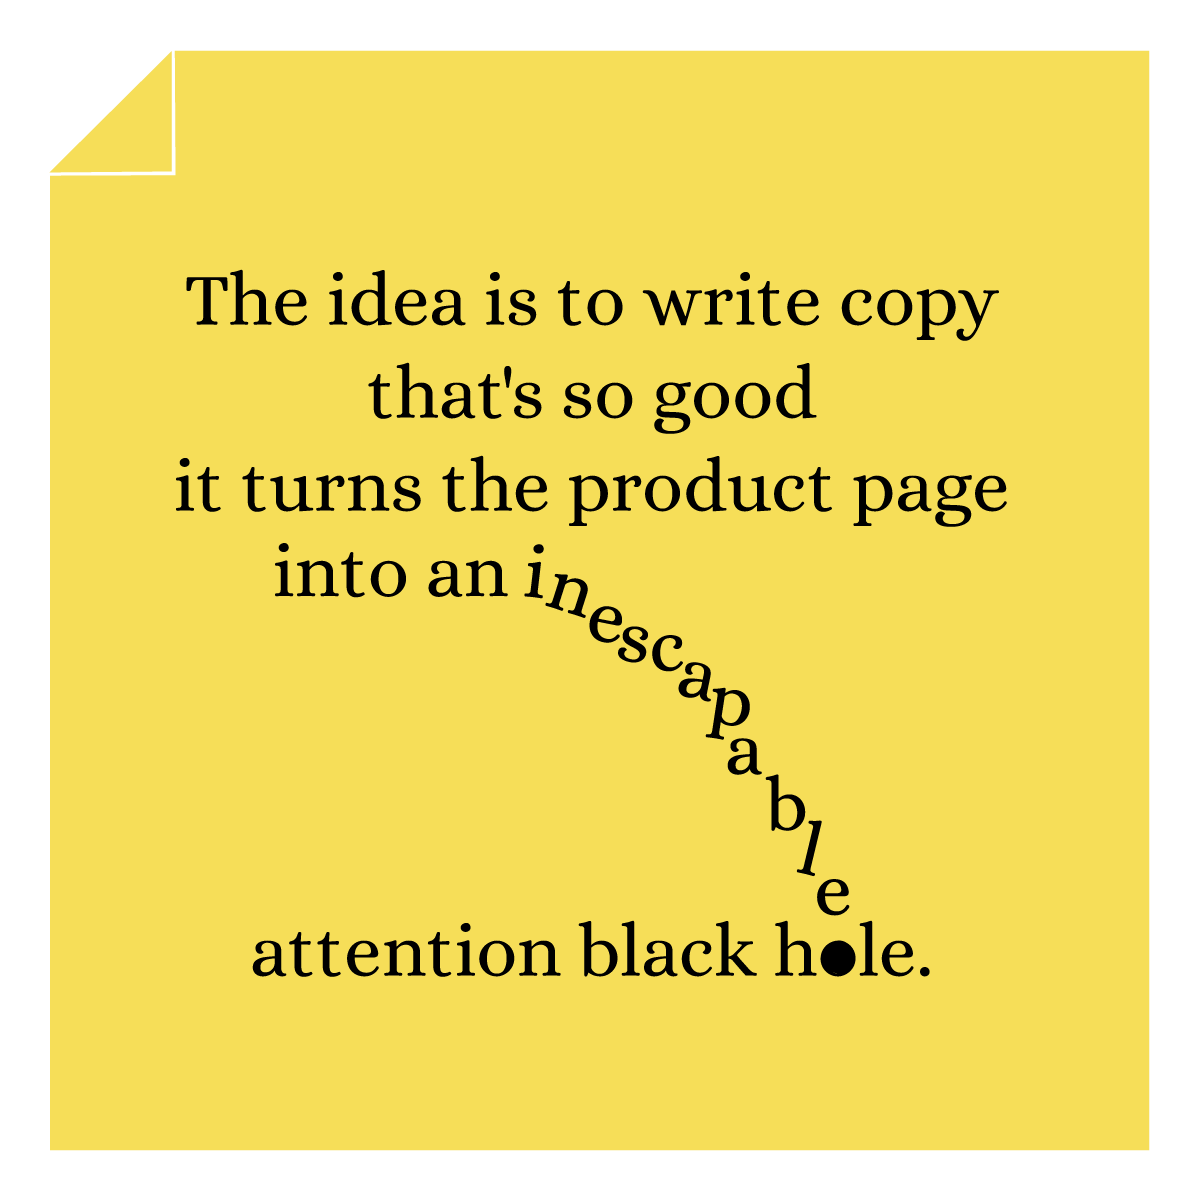 Convert your product page copy into an attention black hole.